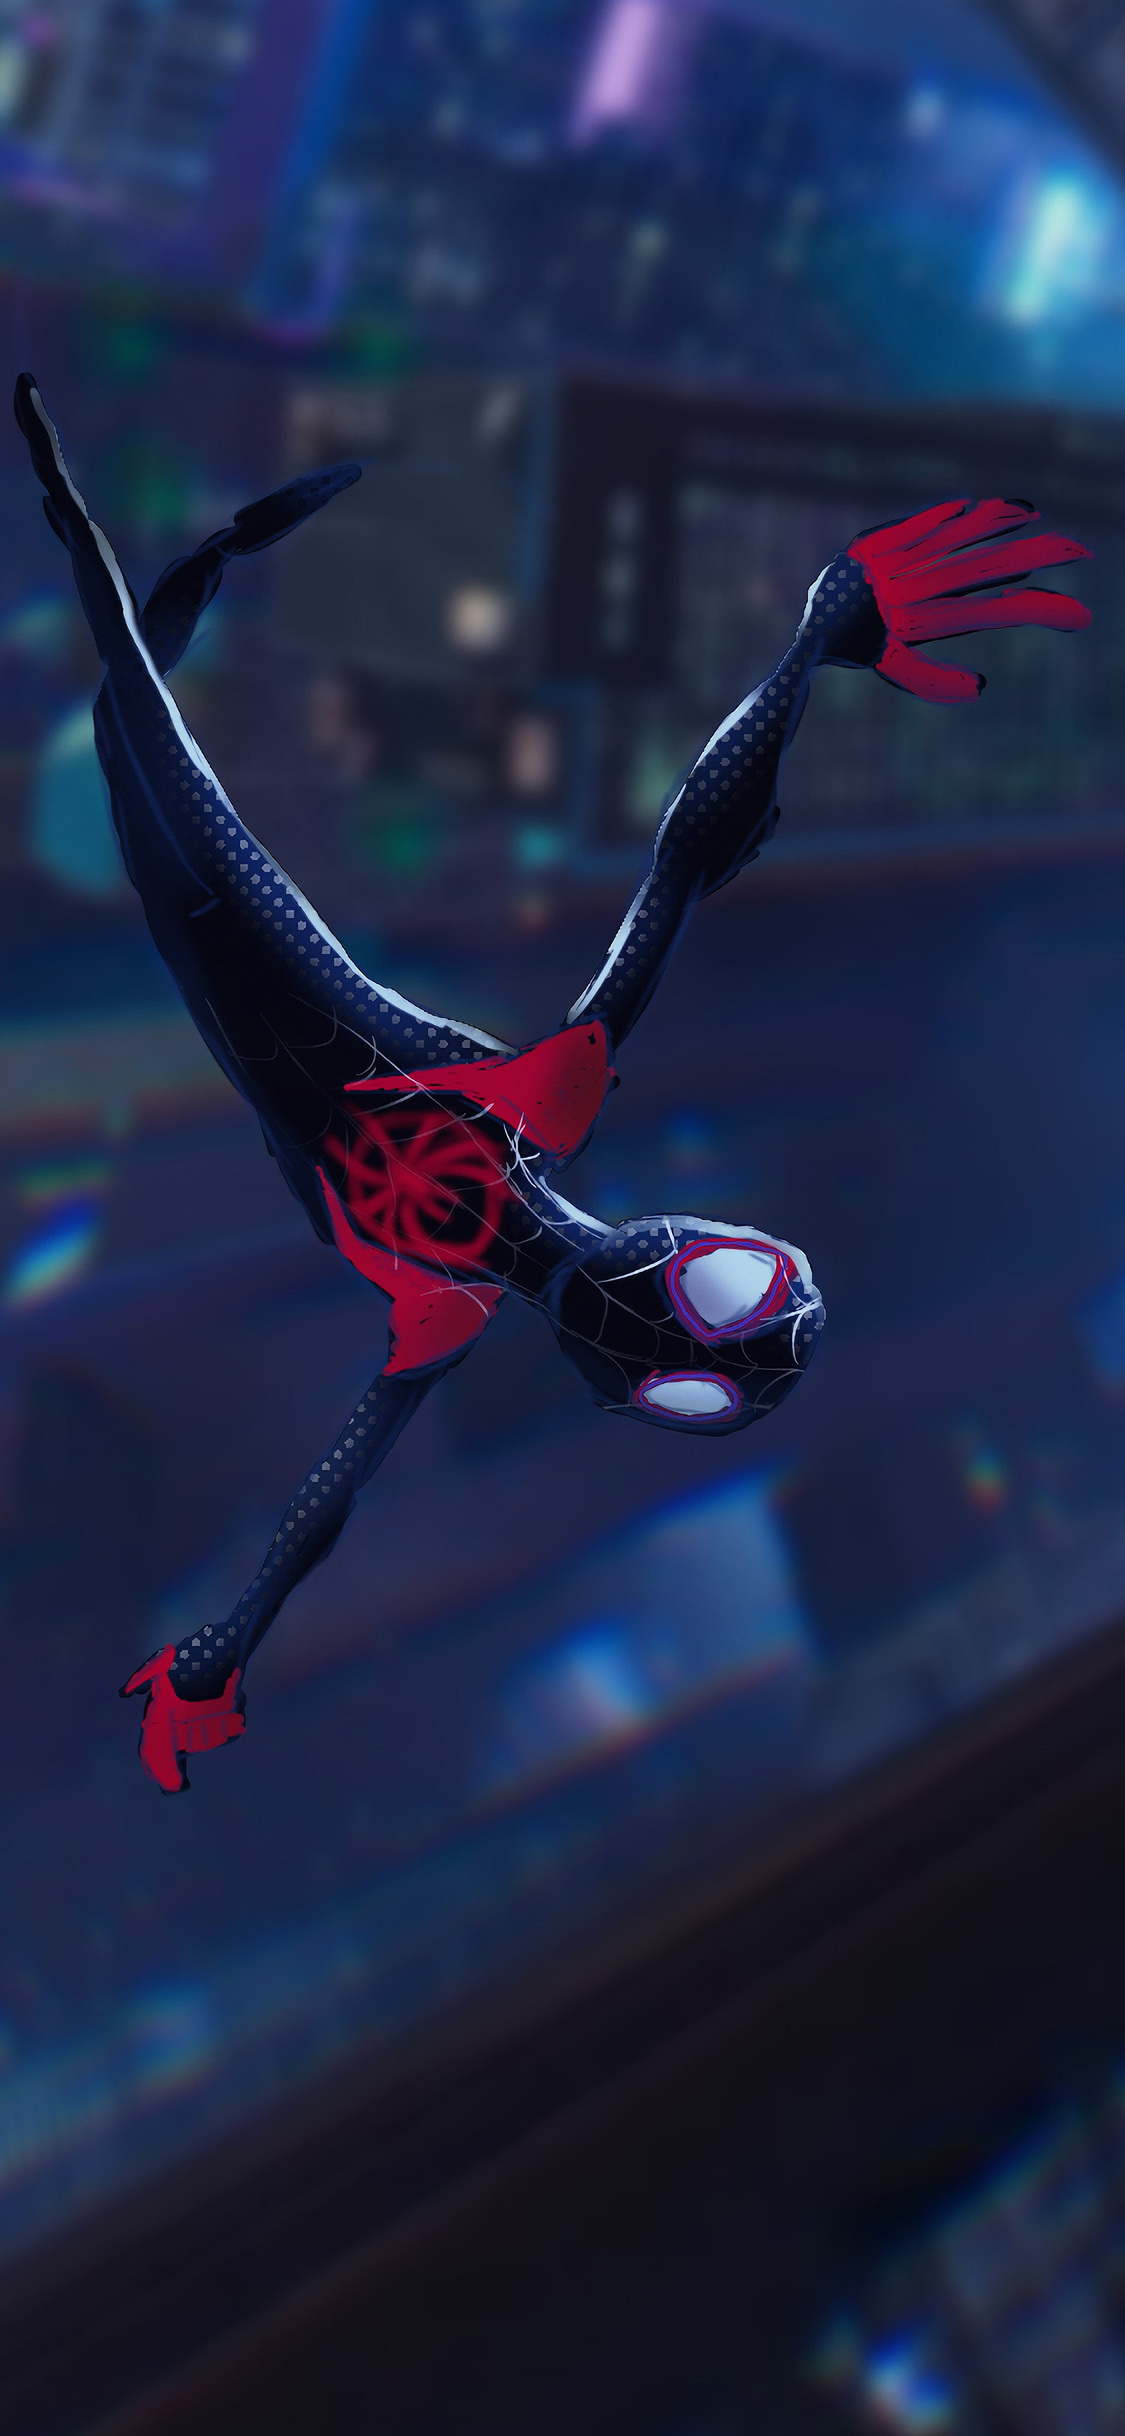 1125x2436 Spiderman Into The Spider Verse 4k Iphone Xs Iphone 10